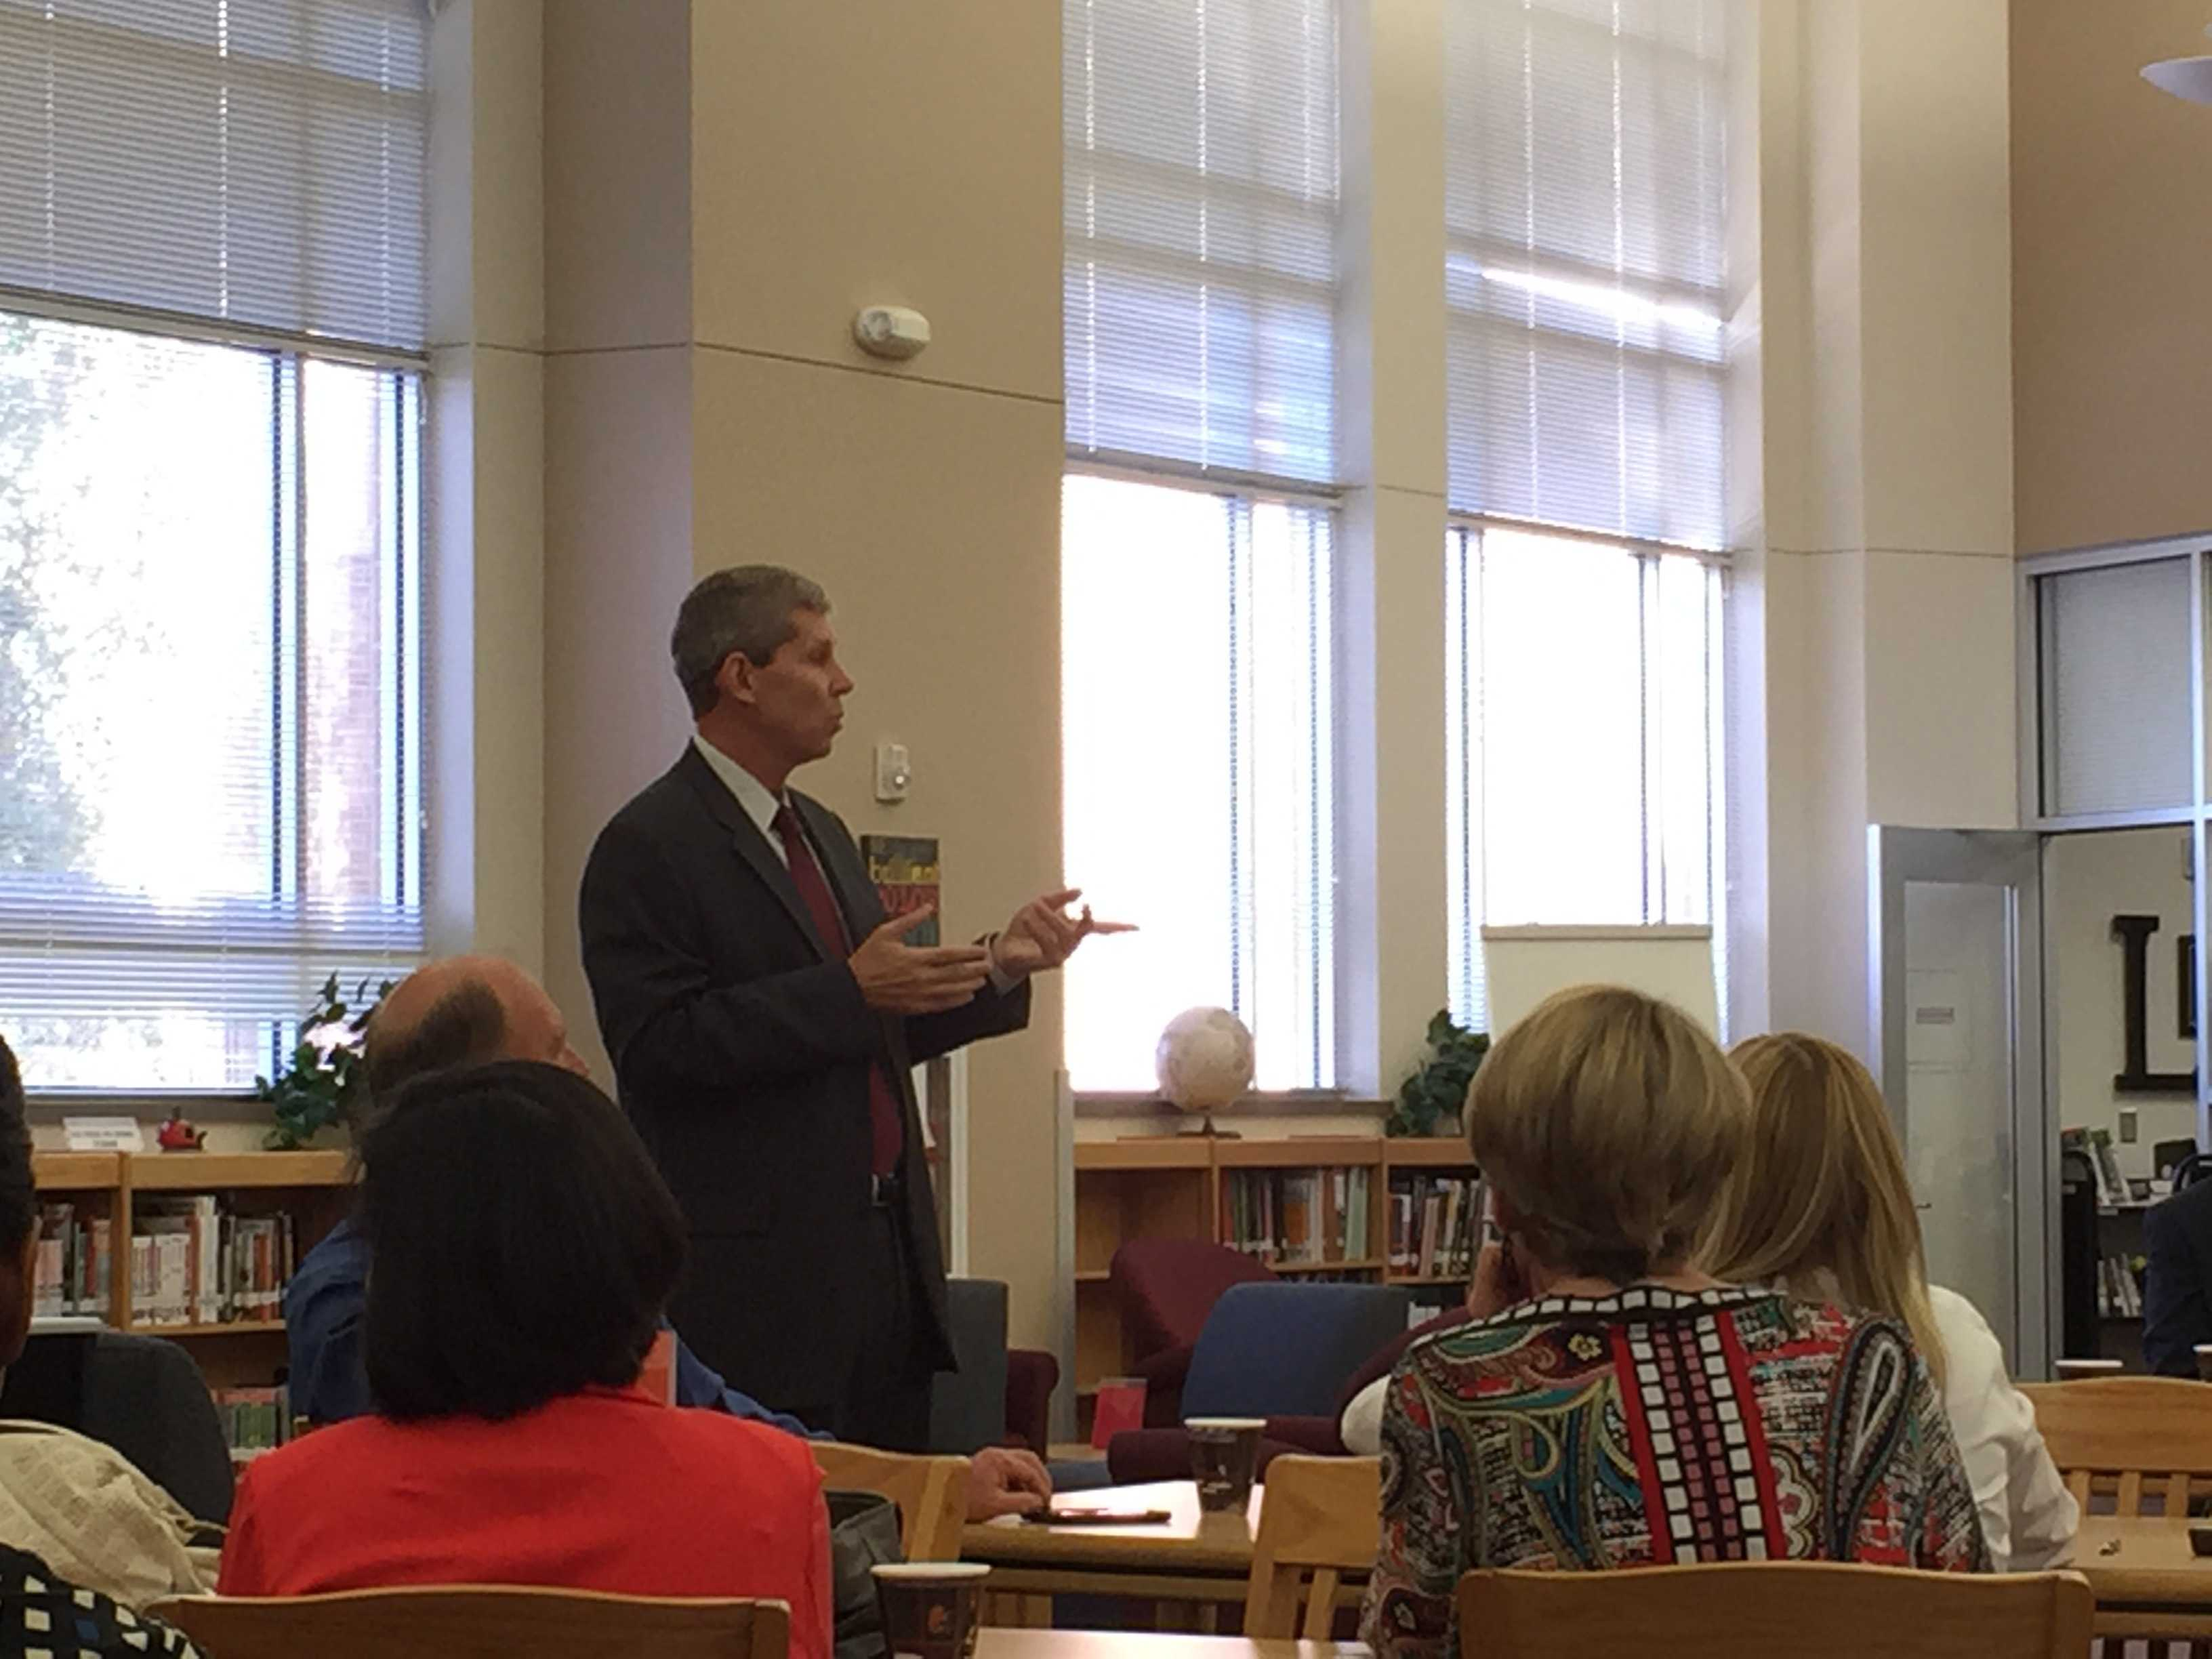 Superintendent Lyon visited the school on Thursday to answer questions from parents about the district. Topics included class sizes, hiring teachers, and AP success rates.